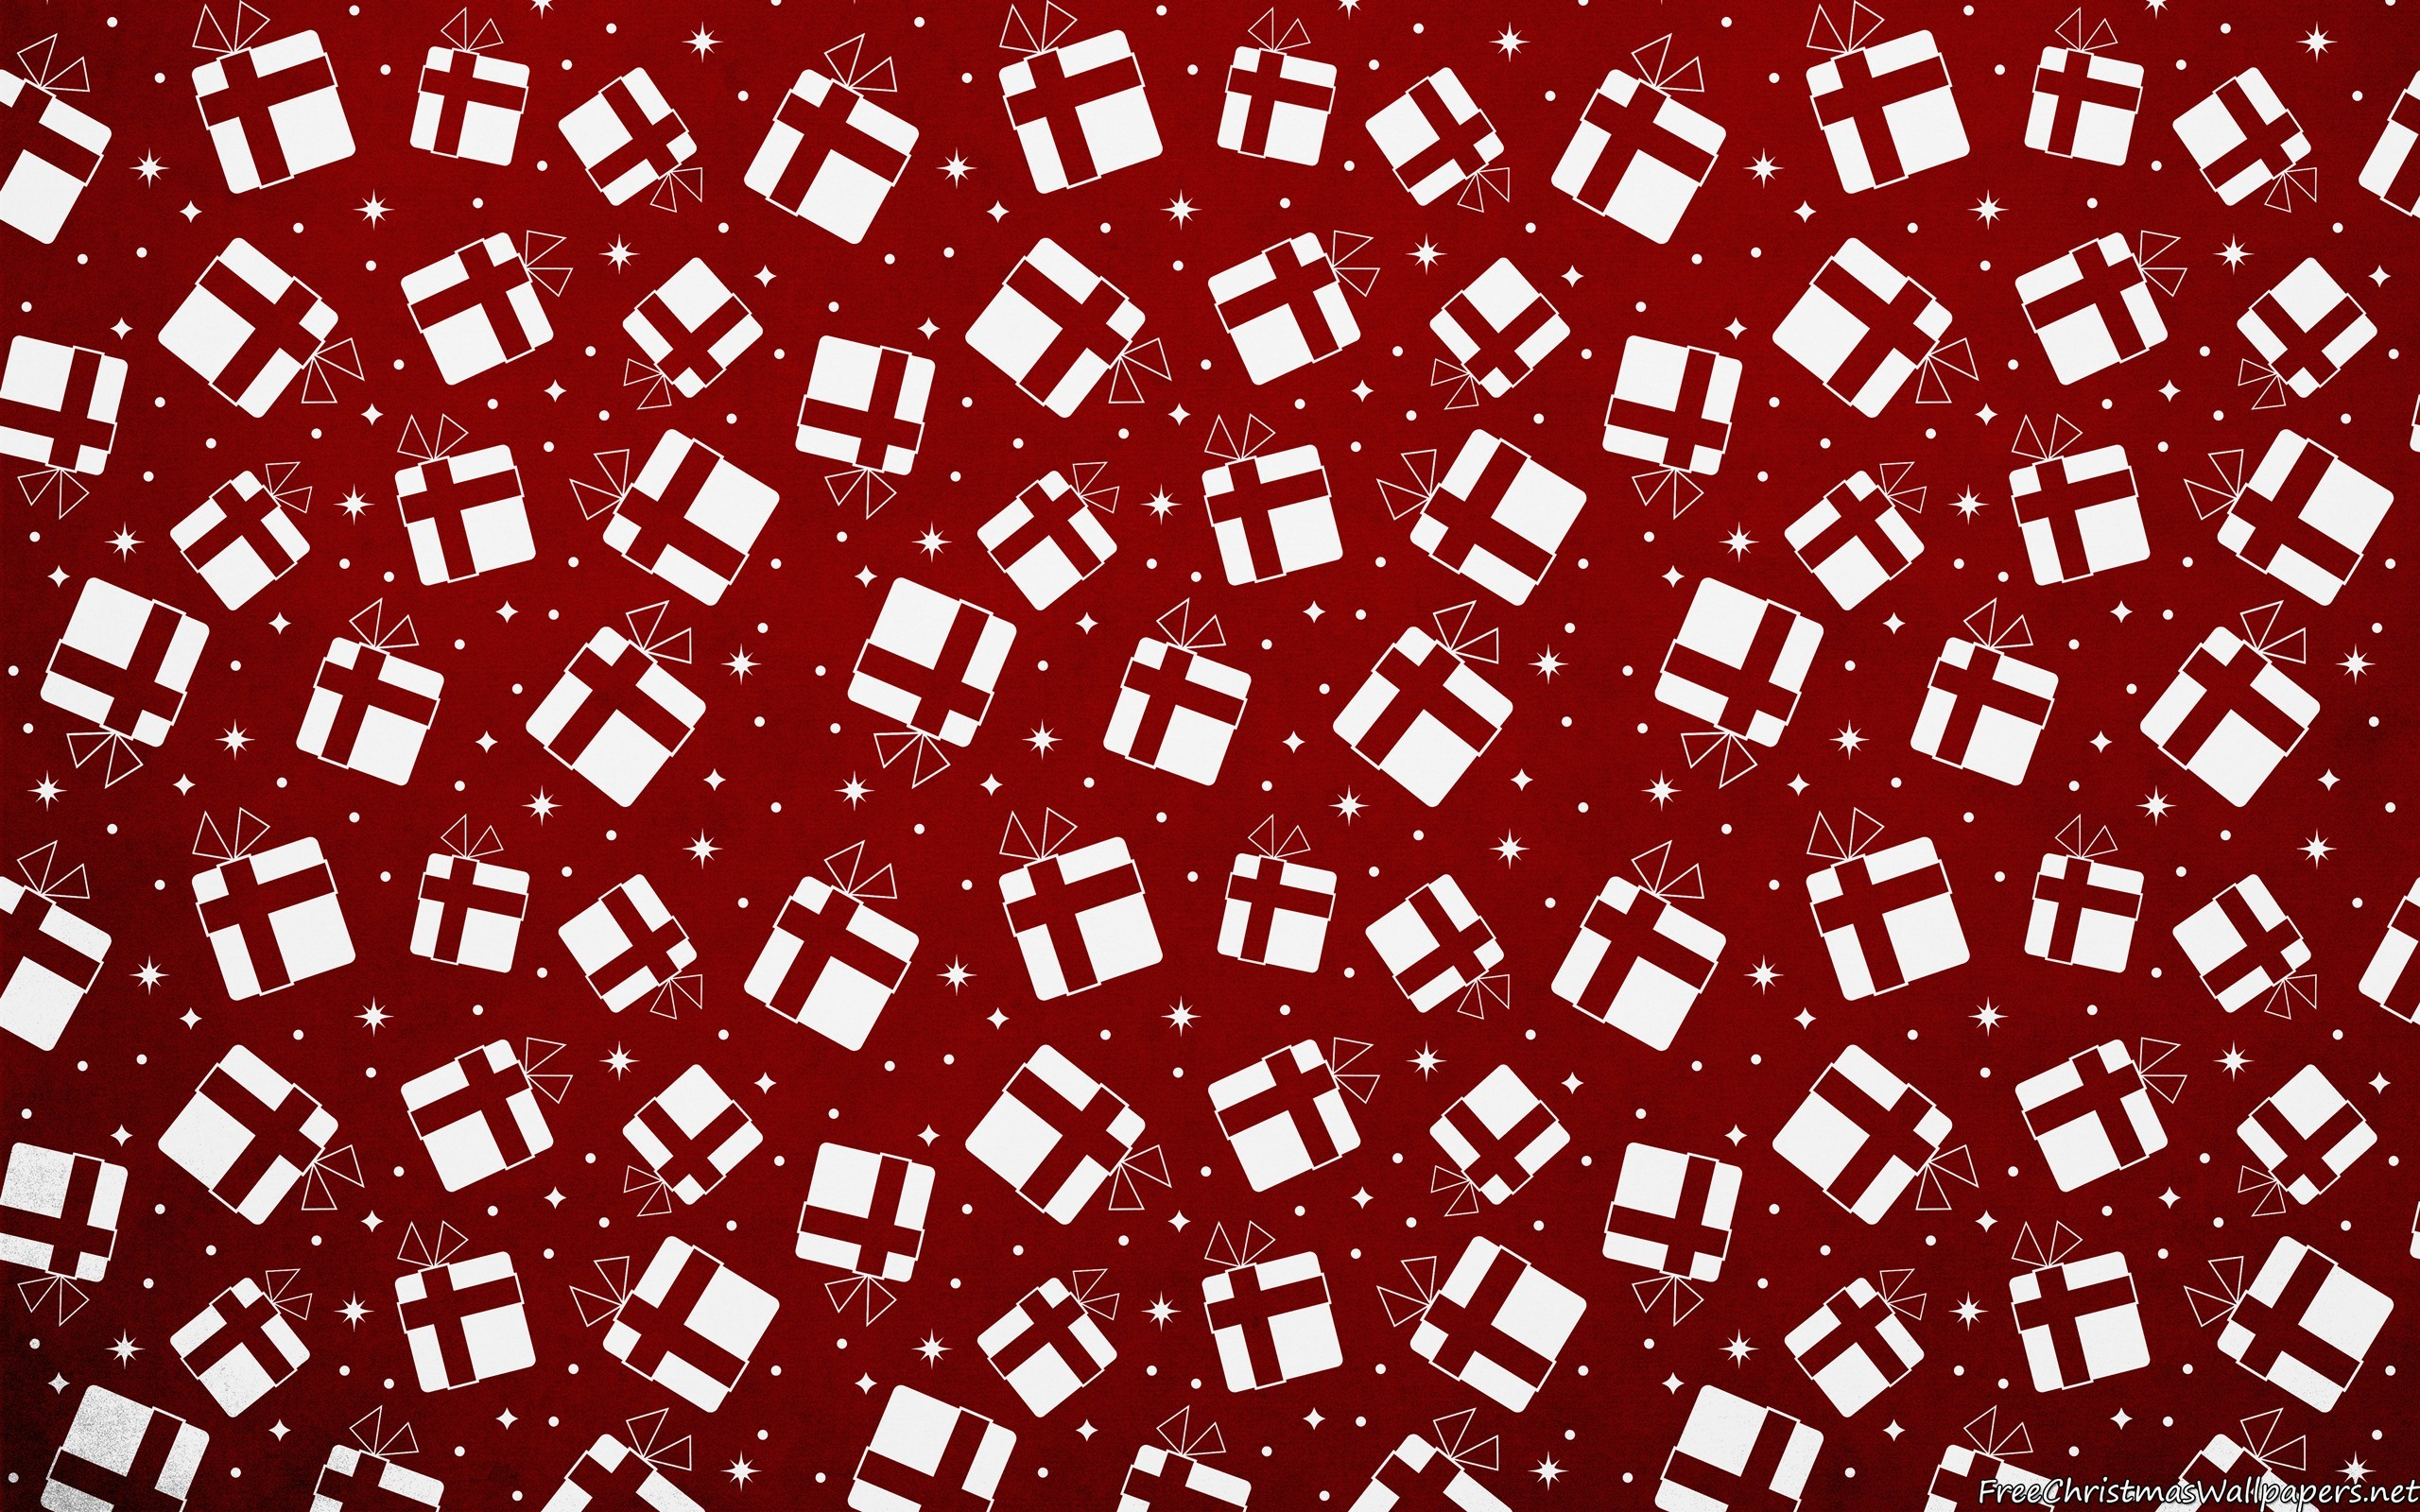 Res: 2560x1600, Christmas Gifts Background Pattern